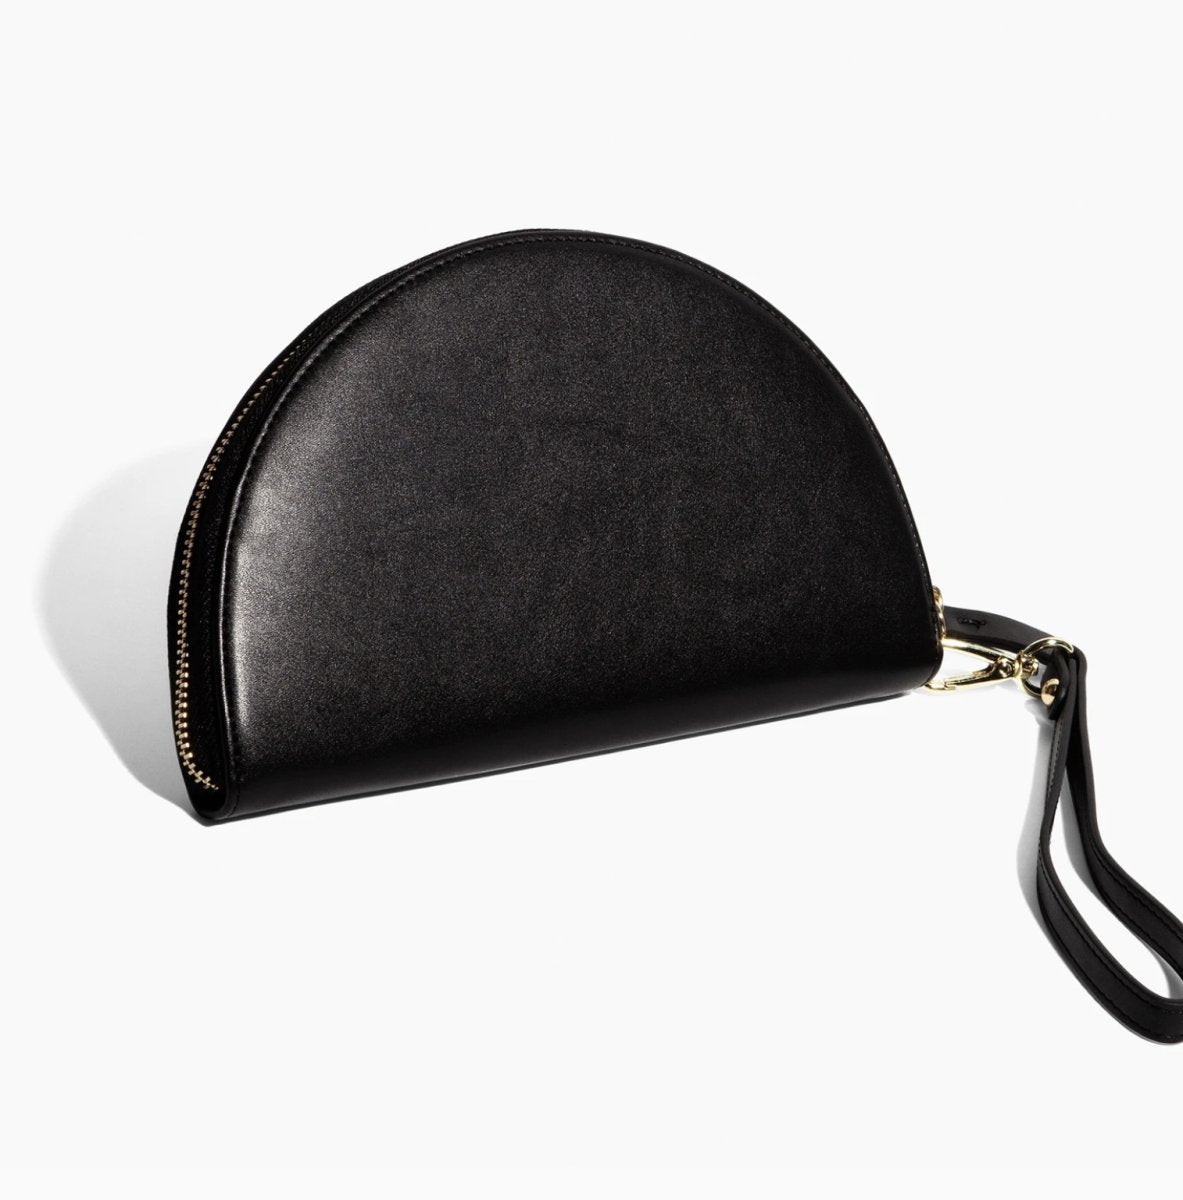 Poketo Half Moon Clutch in Black